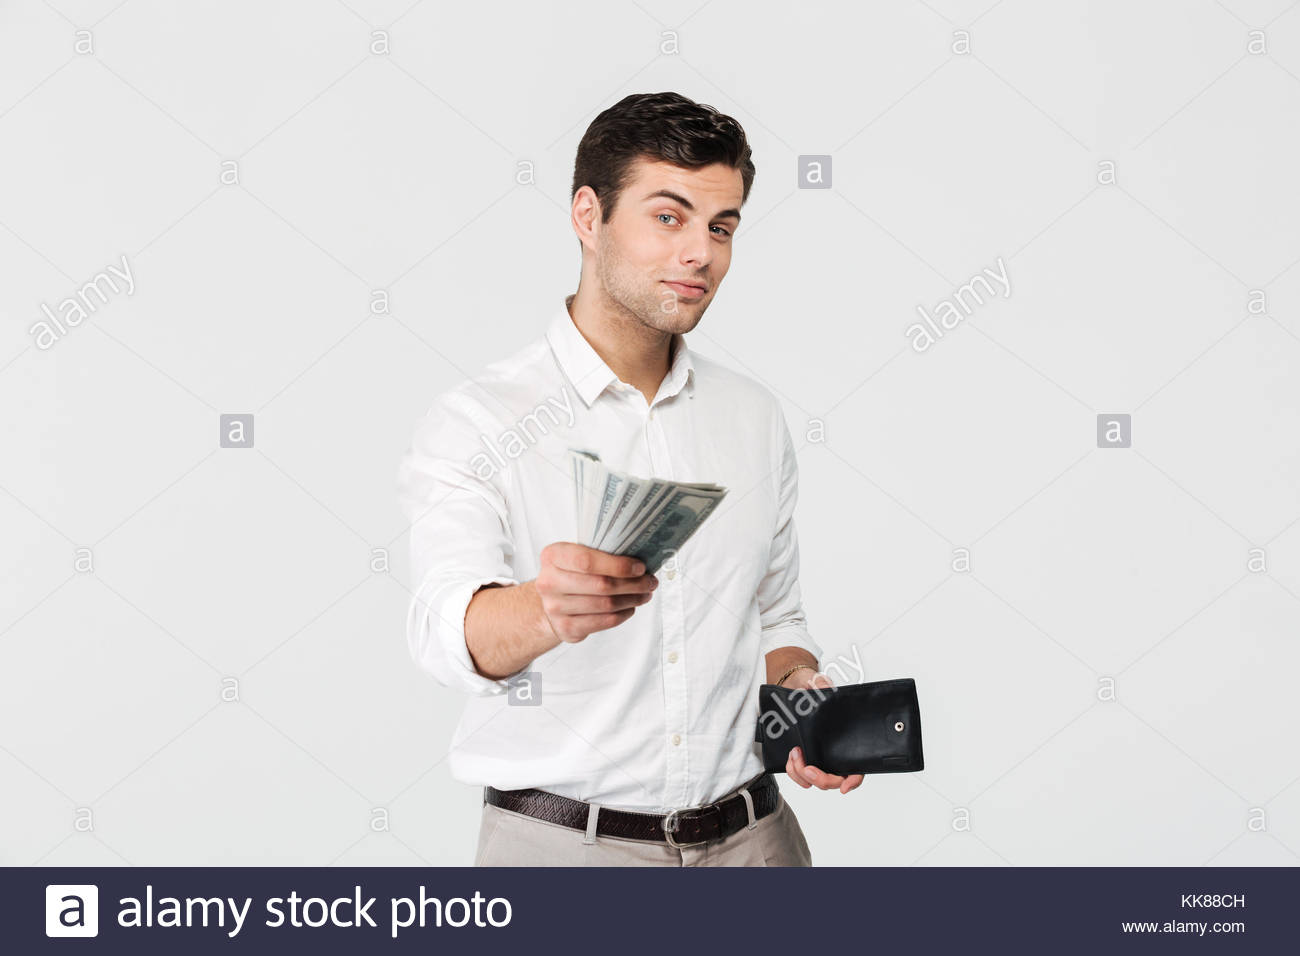 portrait-of-a-successful-smiling-man-holding-wallet-and-giving-money-KK88CH.jpg